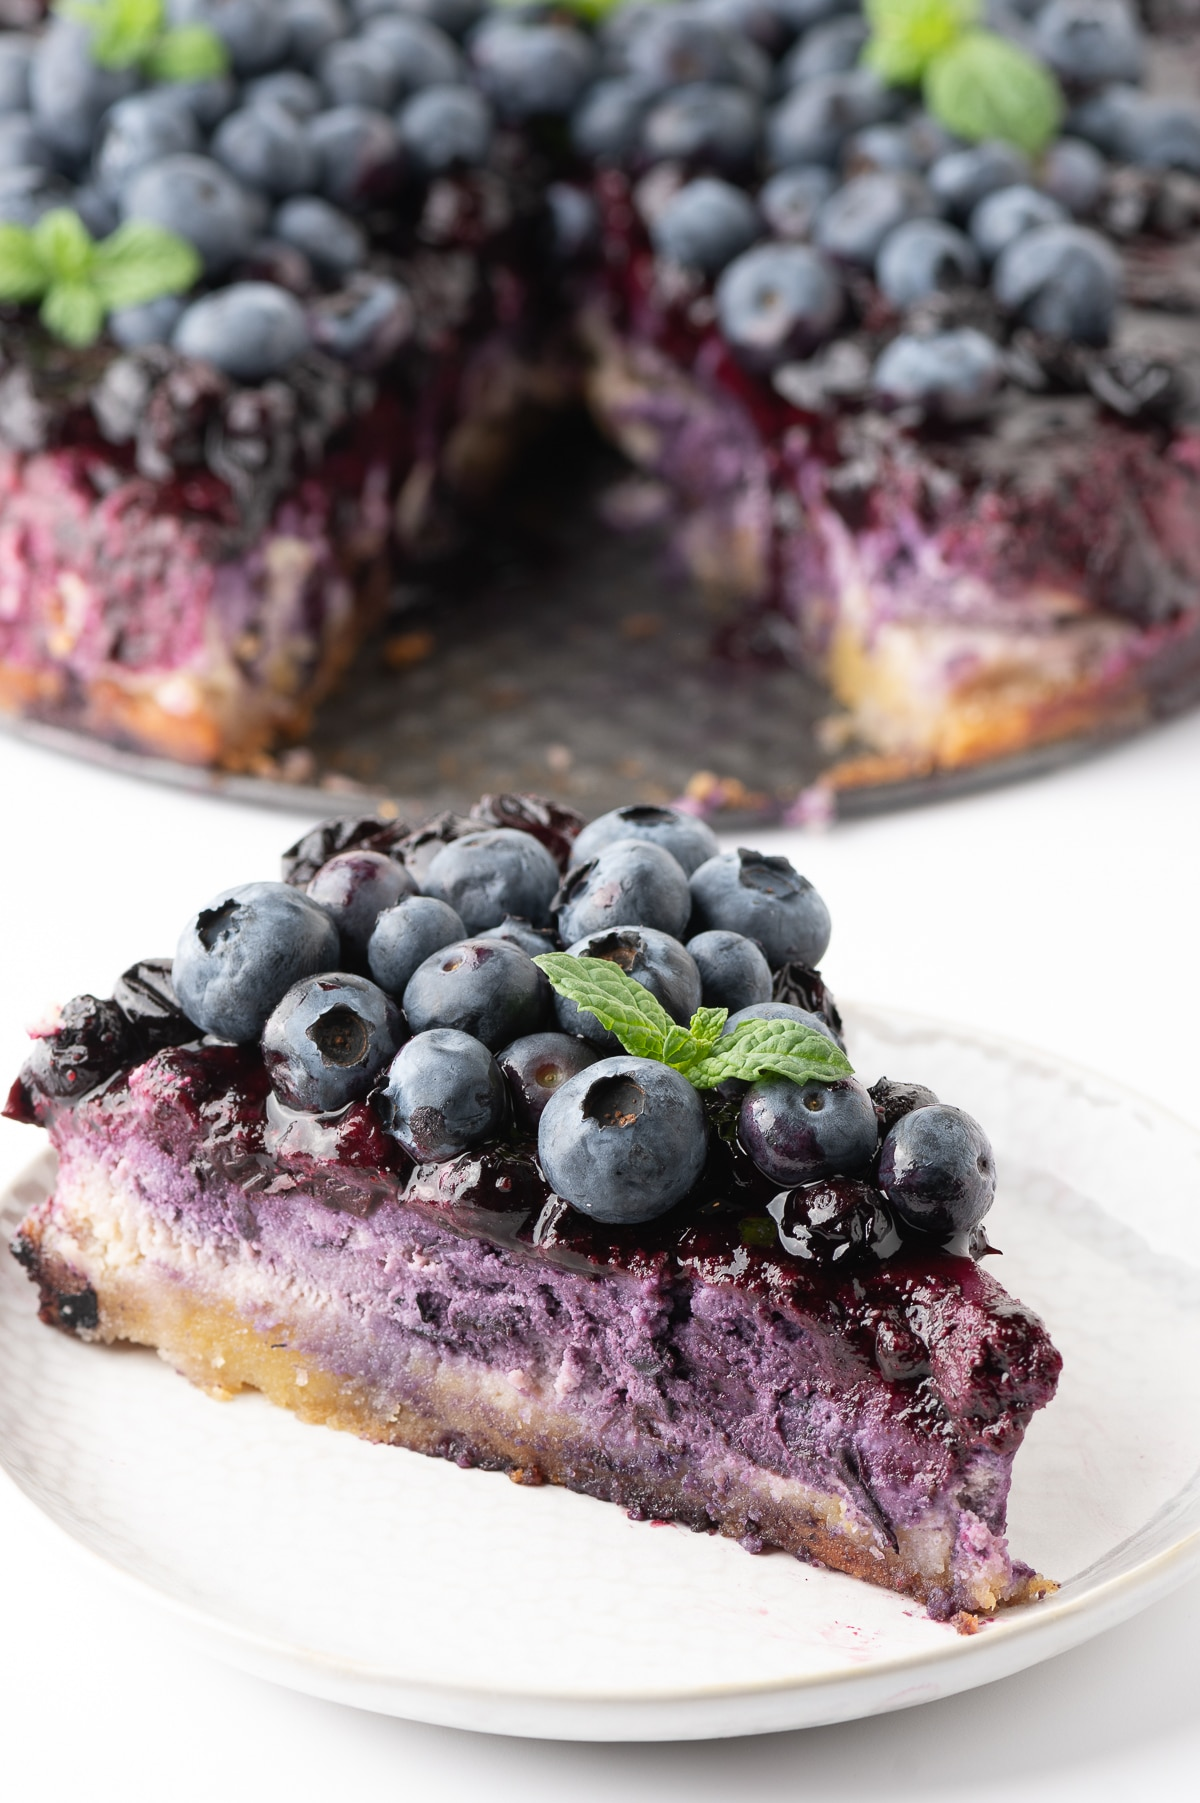 An up close photo of a piece of bright violet colored cheesecake topped with blueberry drizzle, fresh big bright blueberries and a sprig of bright green mint